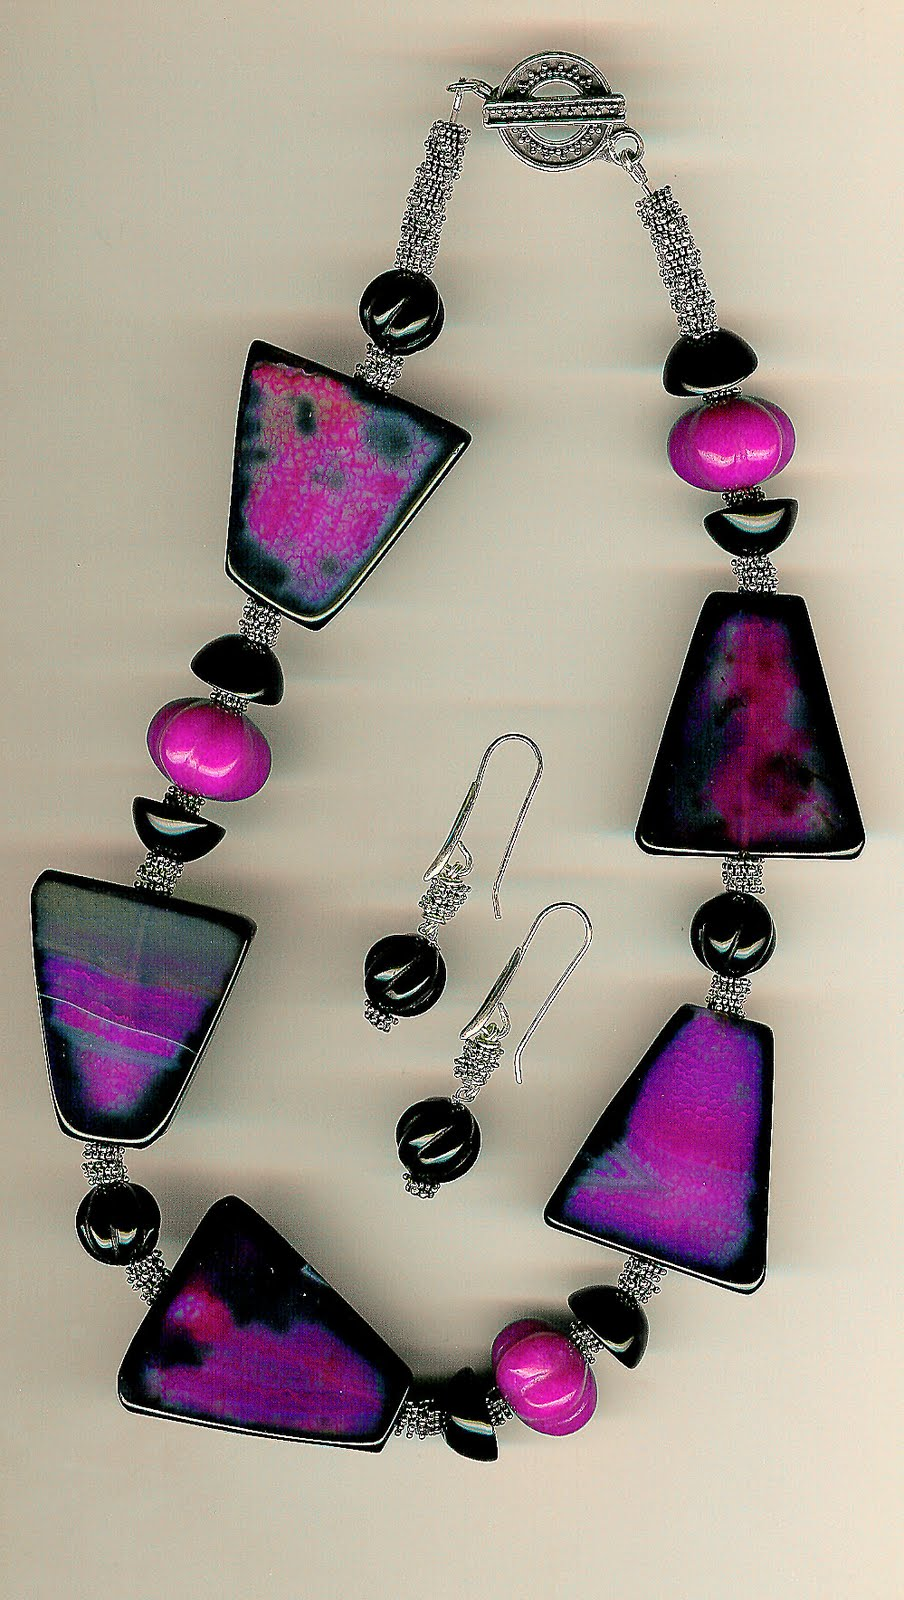 173. Agate, onyx, Jade with Bali Sterling Silver + Earrings